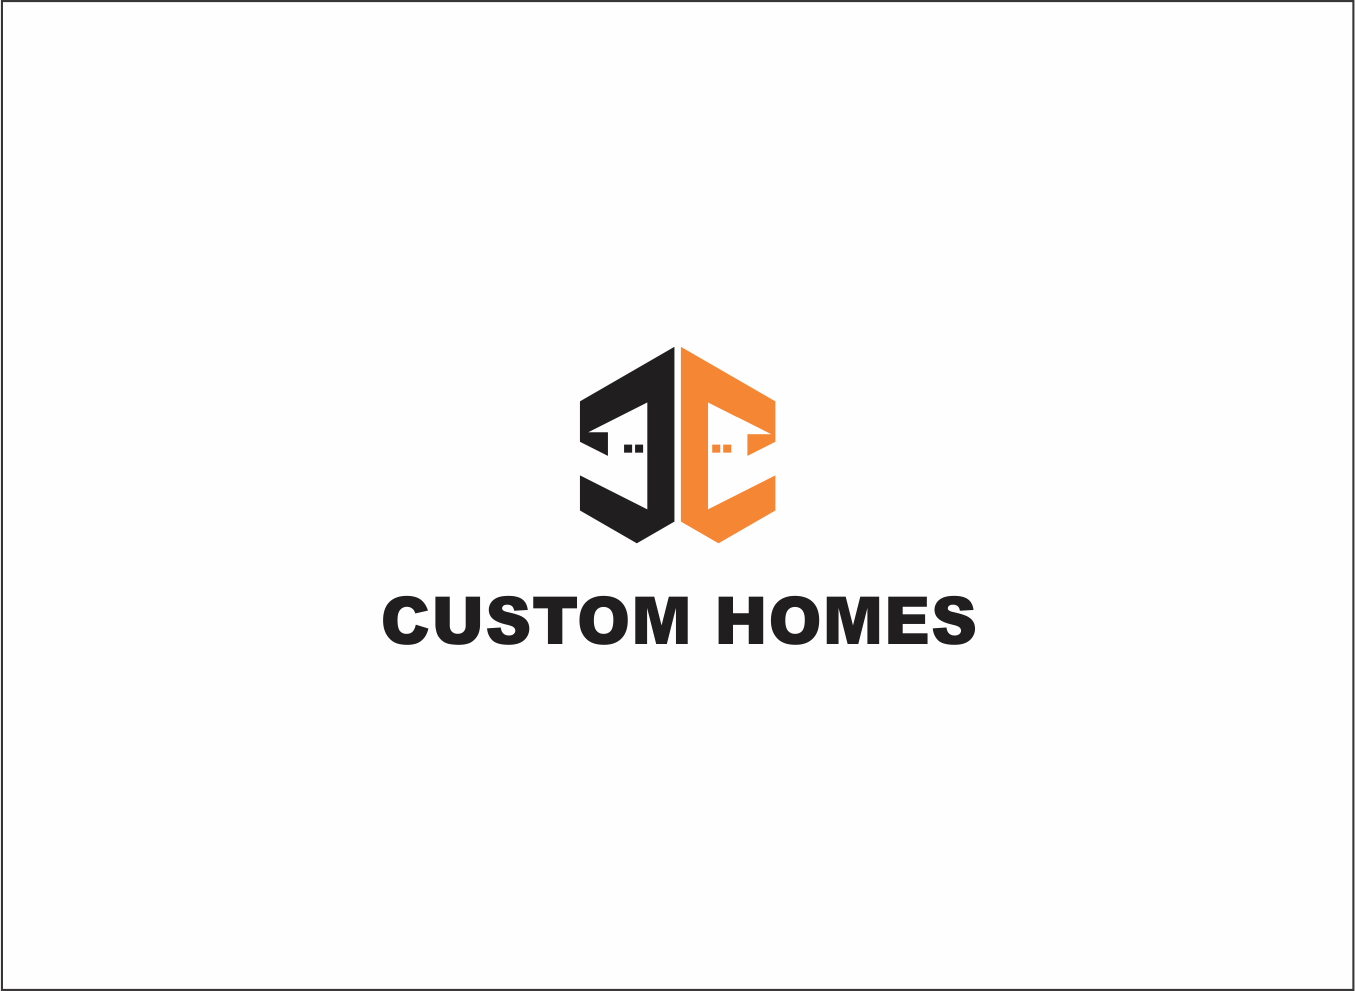 Logo Design by Armada Jamaluddin - Entry No. 86 in the Logo Design Contest Creative Logo Design for DC Custom Homes.